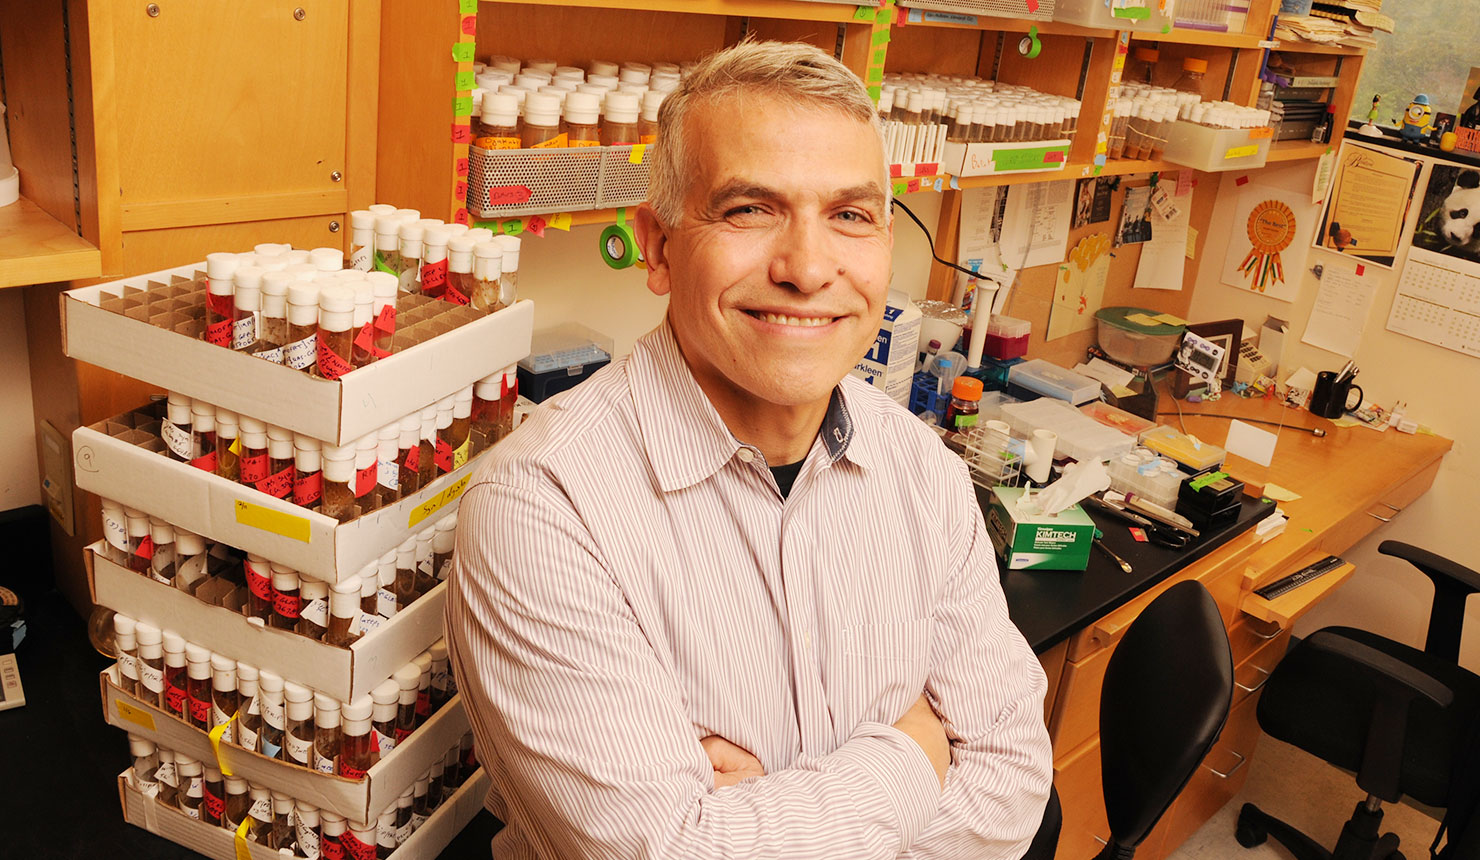 Giovanni Bosco, PhD (Photo by Jon Gilbert Fox)